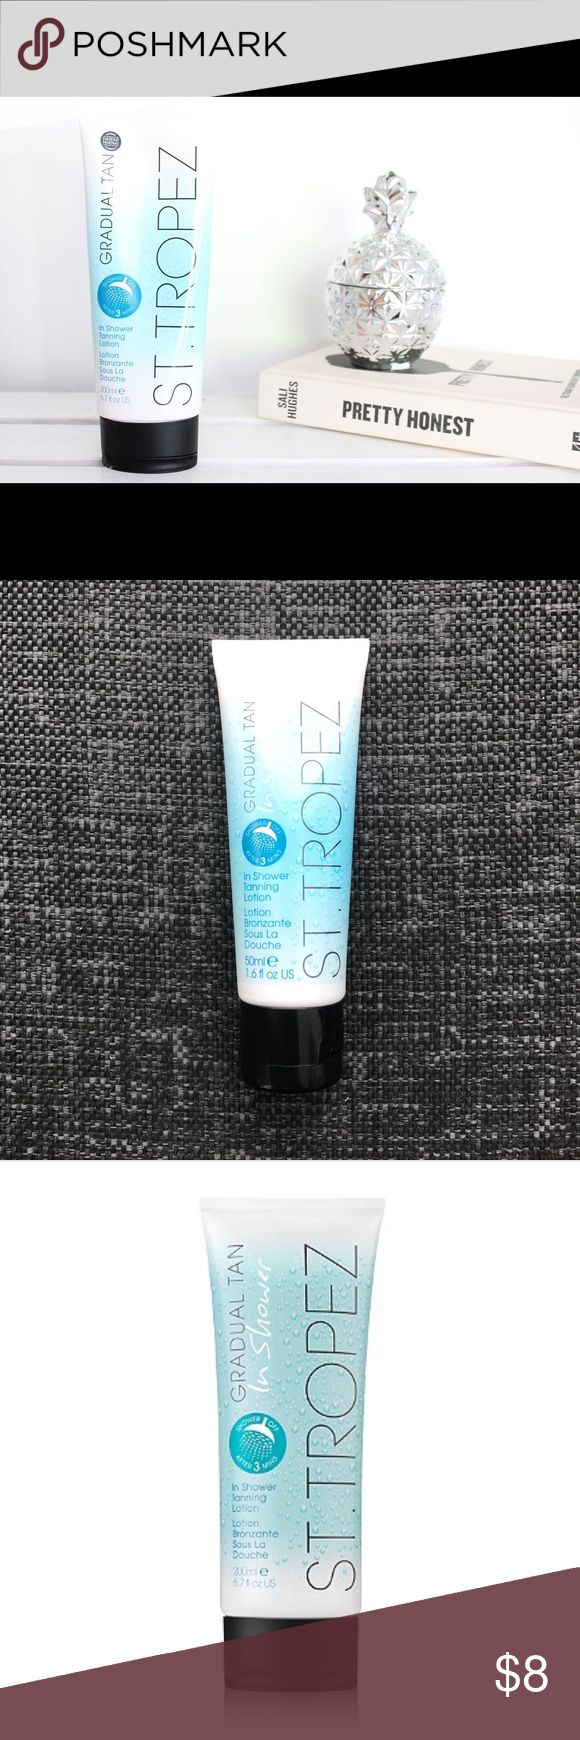 St. Tropez Gradual in Shower Tanning Lotion Brand New. Never opened. Gradual in shower Self Tanning Lotion. 1.6 fl oz. TSA travel approved. Bundle with other items in my closet for a deal. Made in London. Sephora Makeup